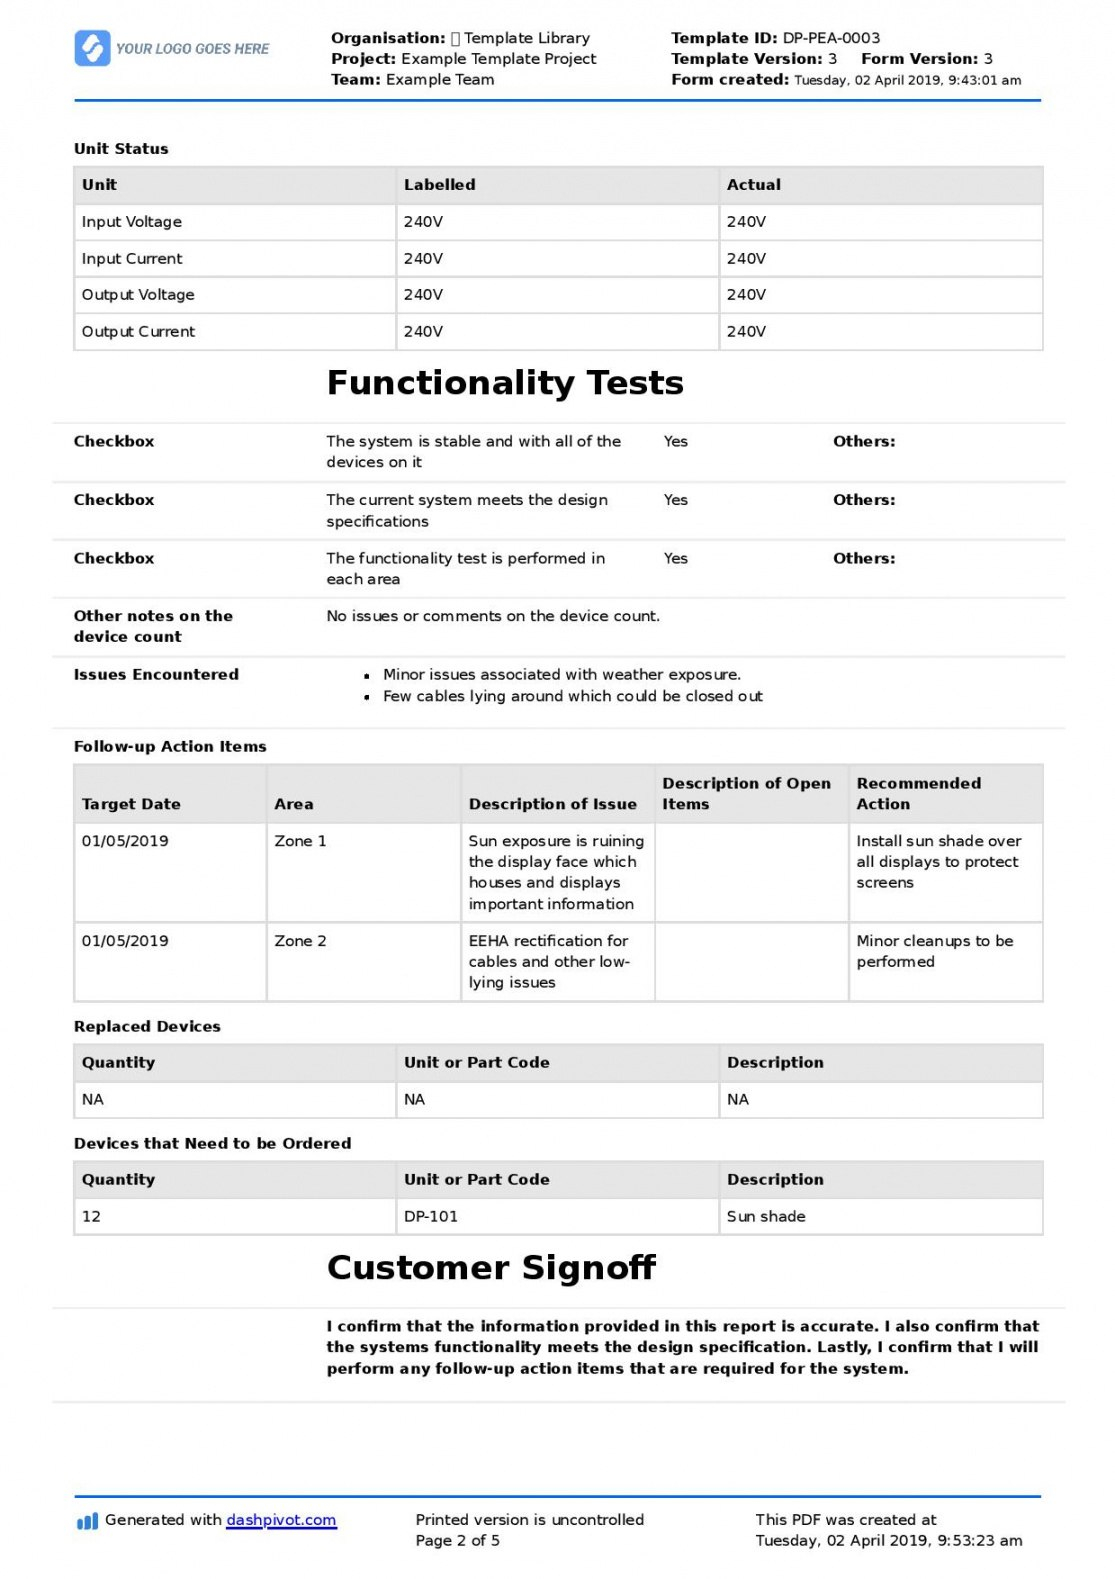 Technical Service Report Template Intended For Technical Service Report Template